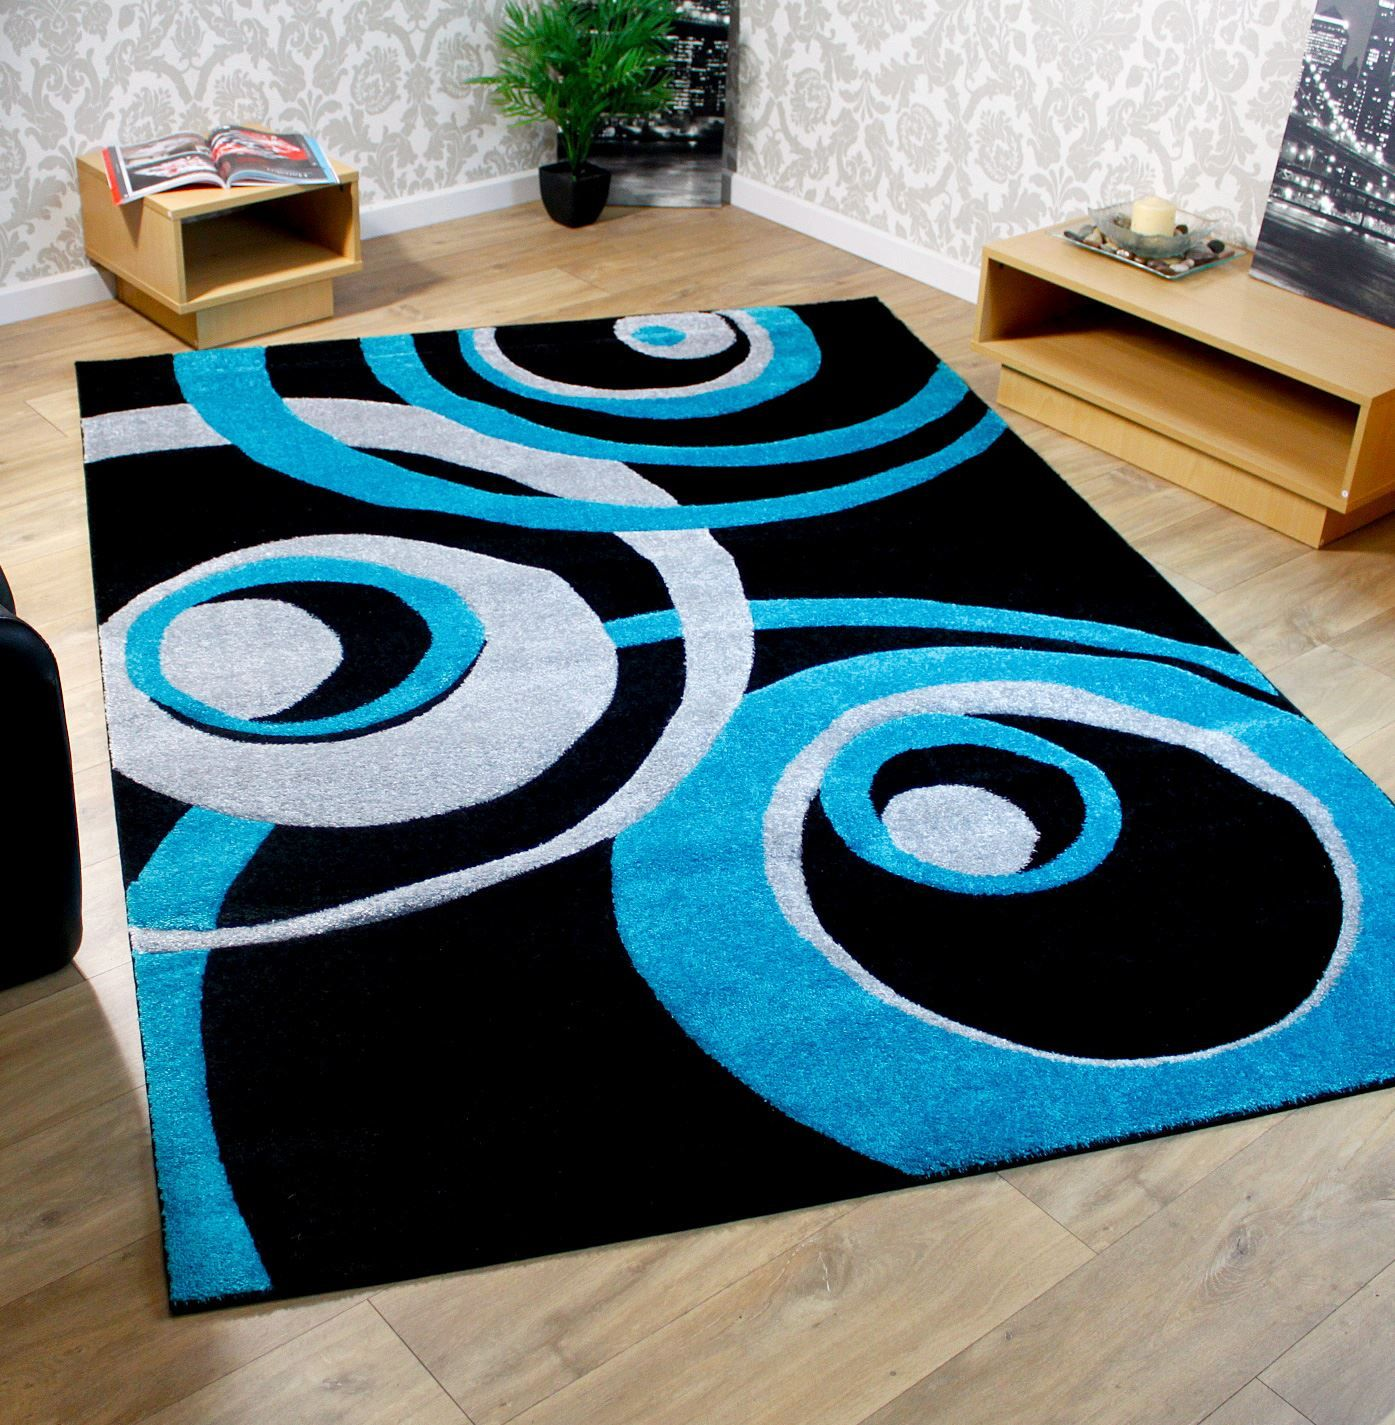 Teal And Black Rug Designs